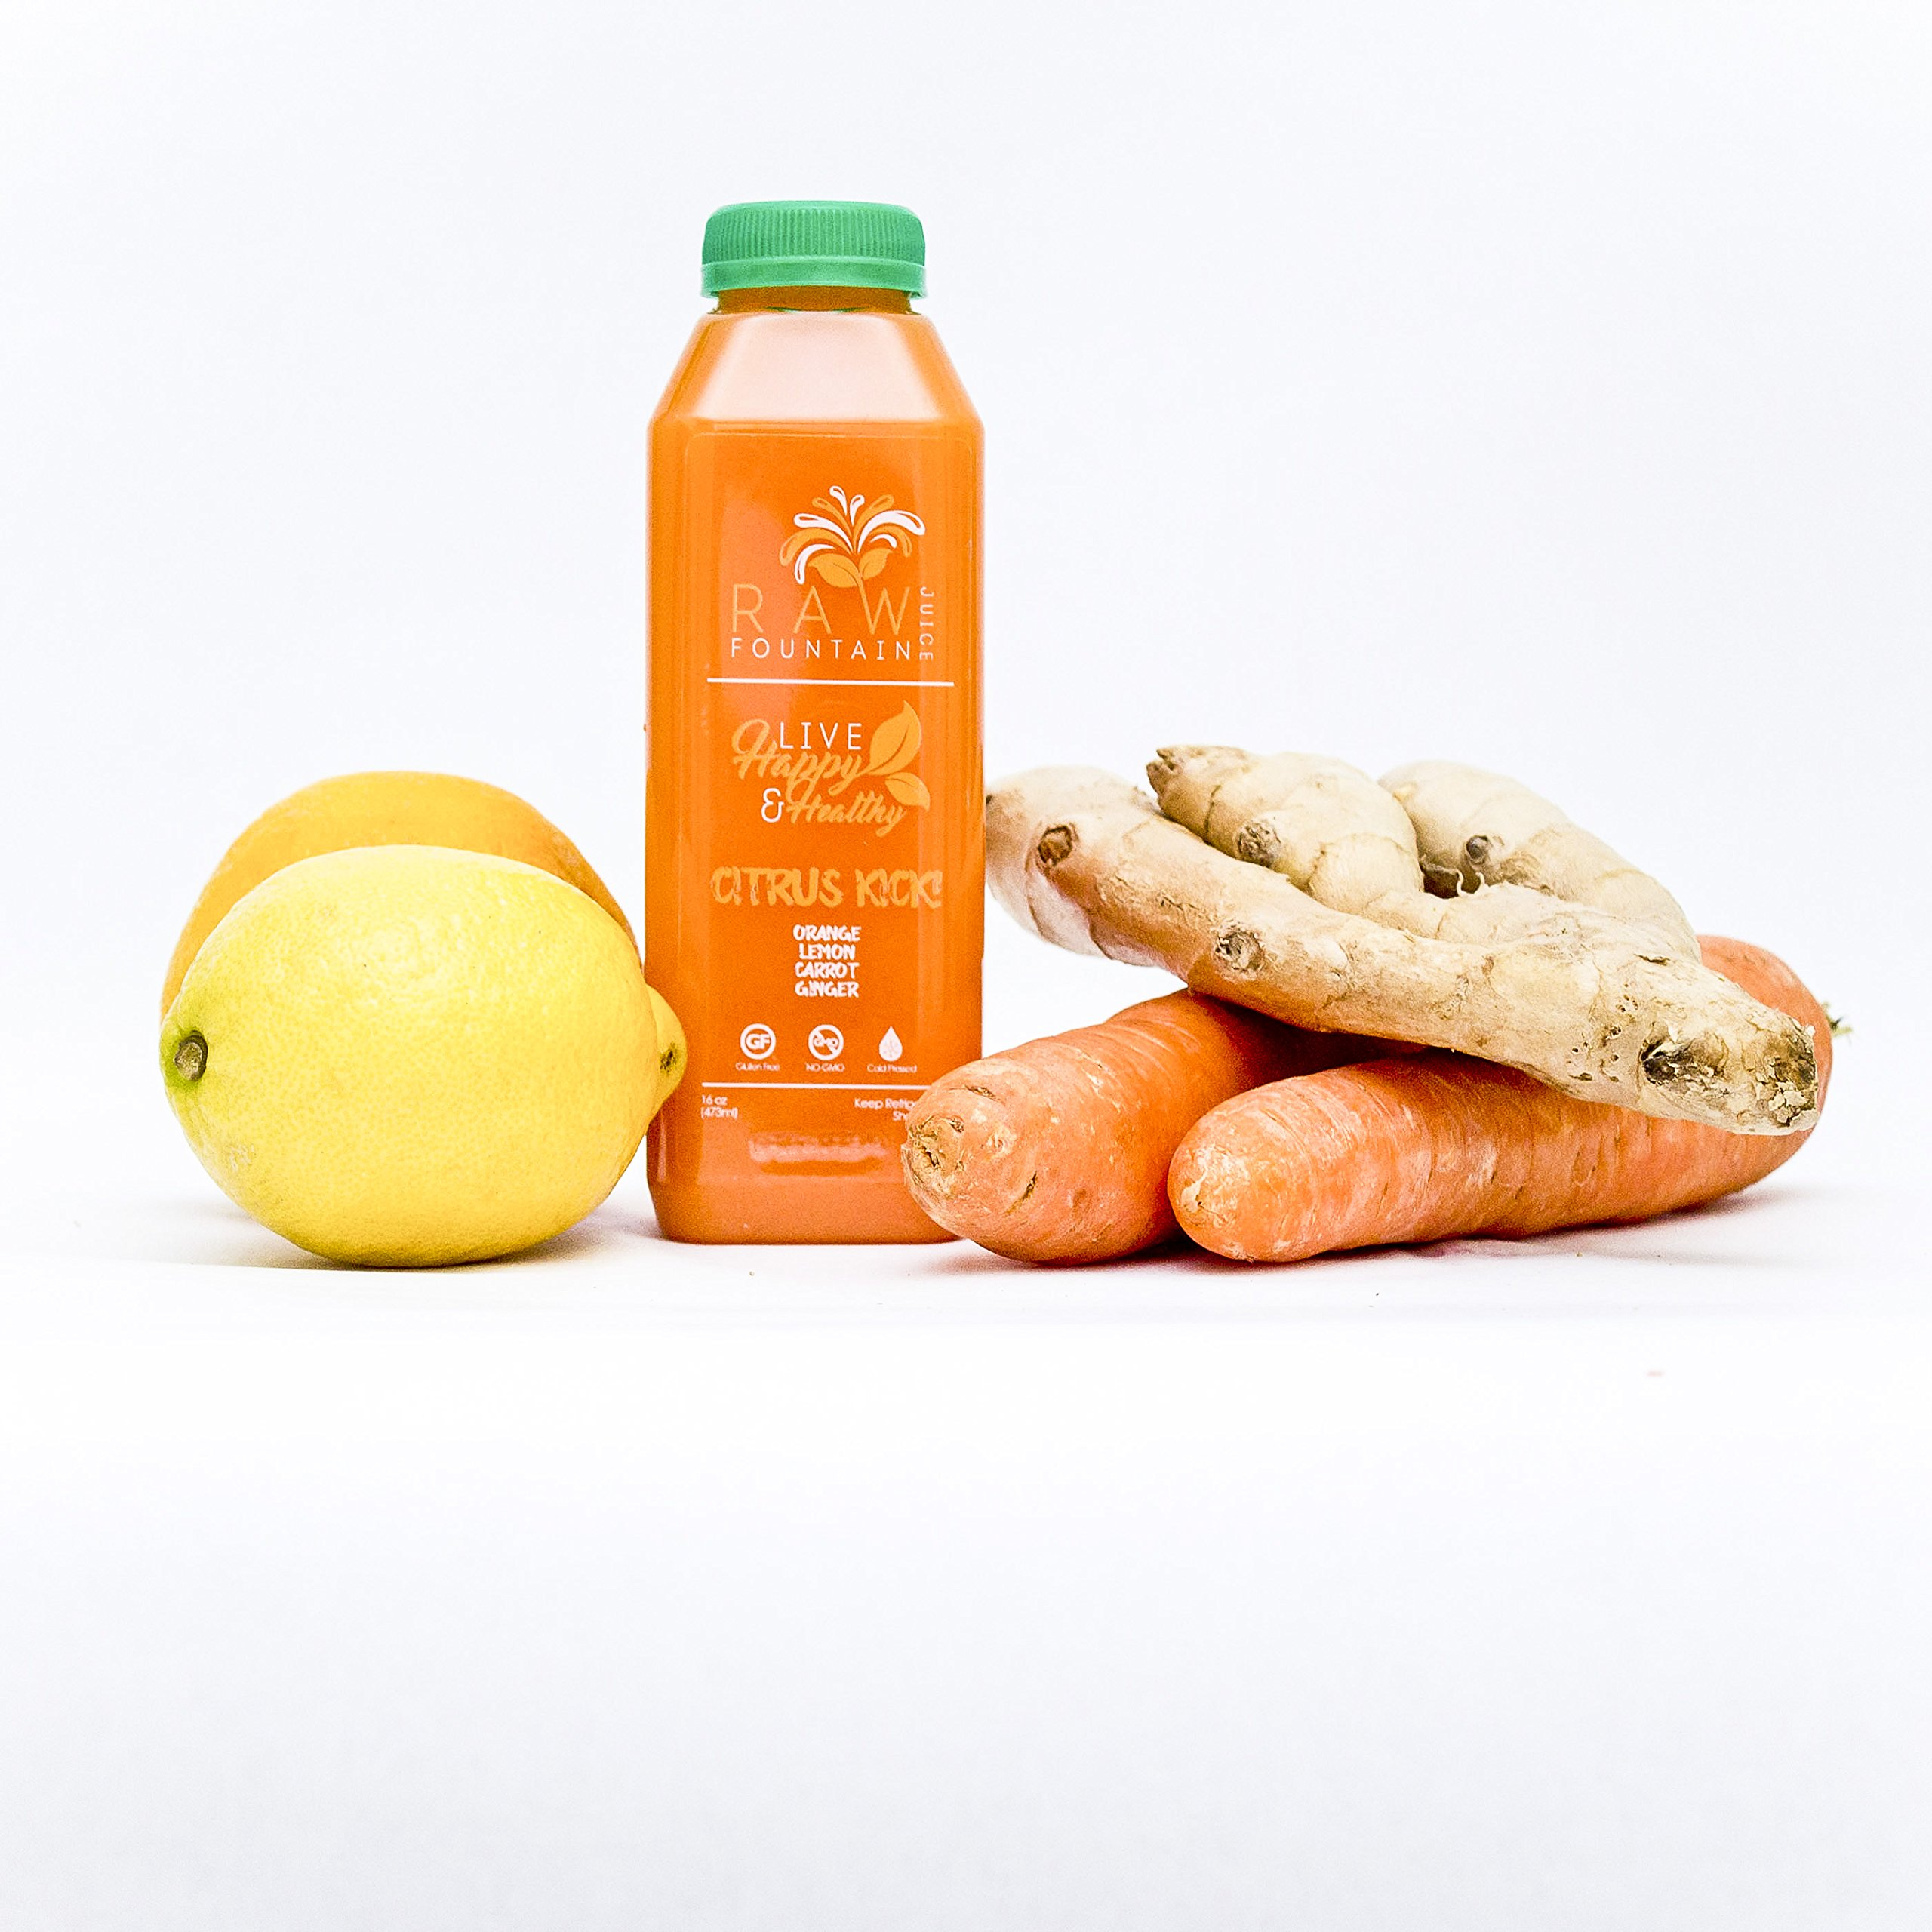 7 Day Juice Cleanse by Raw Fountain Juice - 100% Fresh Natural Organic Raw Vegetable & Fruit Juices - Detox Your Body in a Healthy & Tasty Way! - 42 Bottles (16 fl oz) + 7 BONUS Ginger Shots by Raw Threads (Image #5)